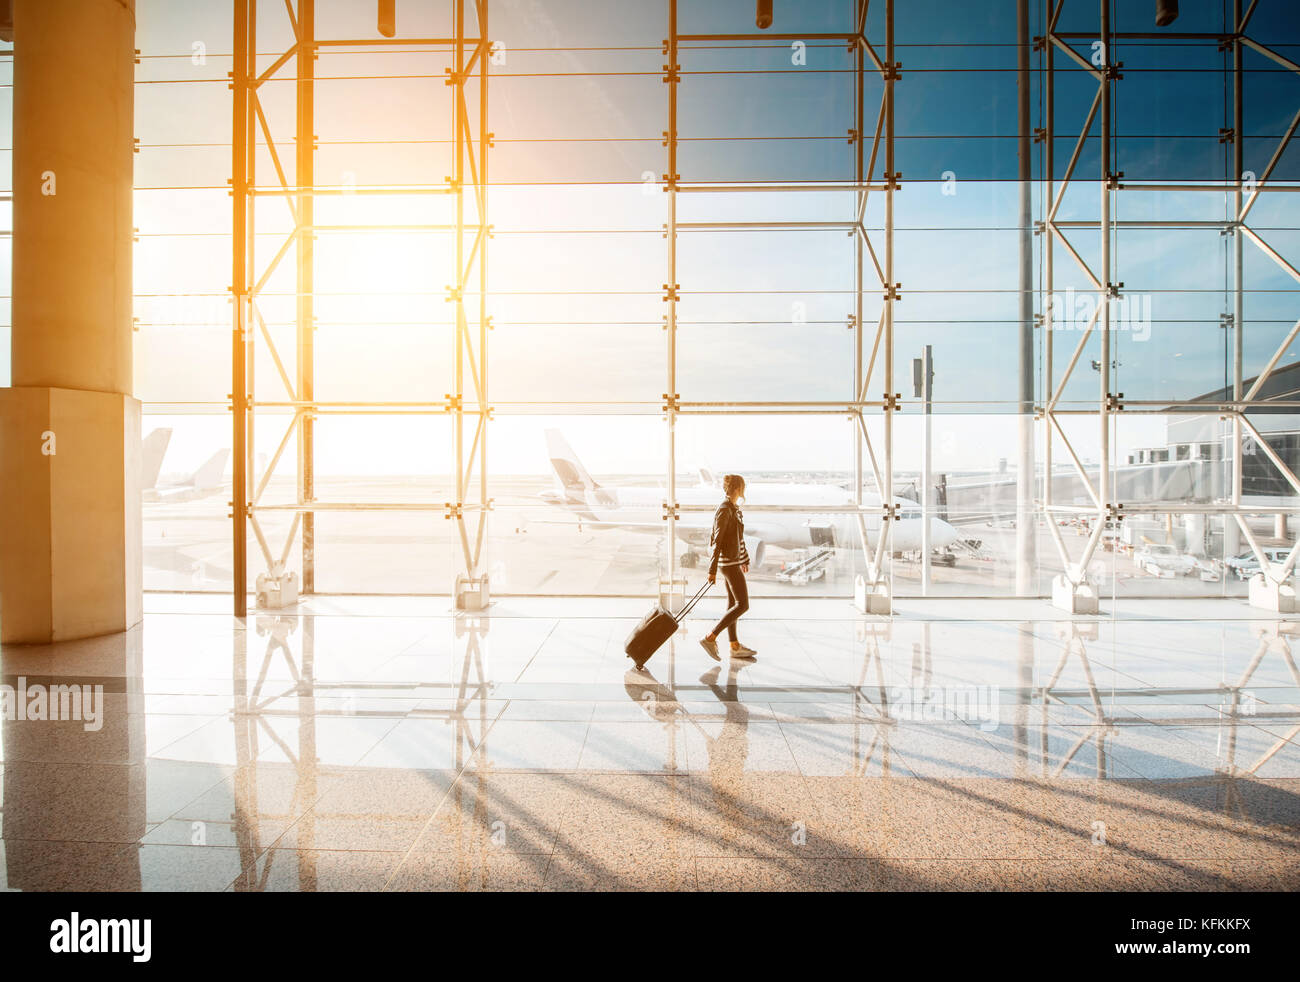 Woman at the airport - Stock Image